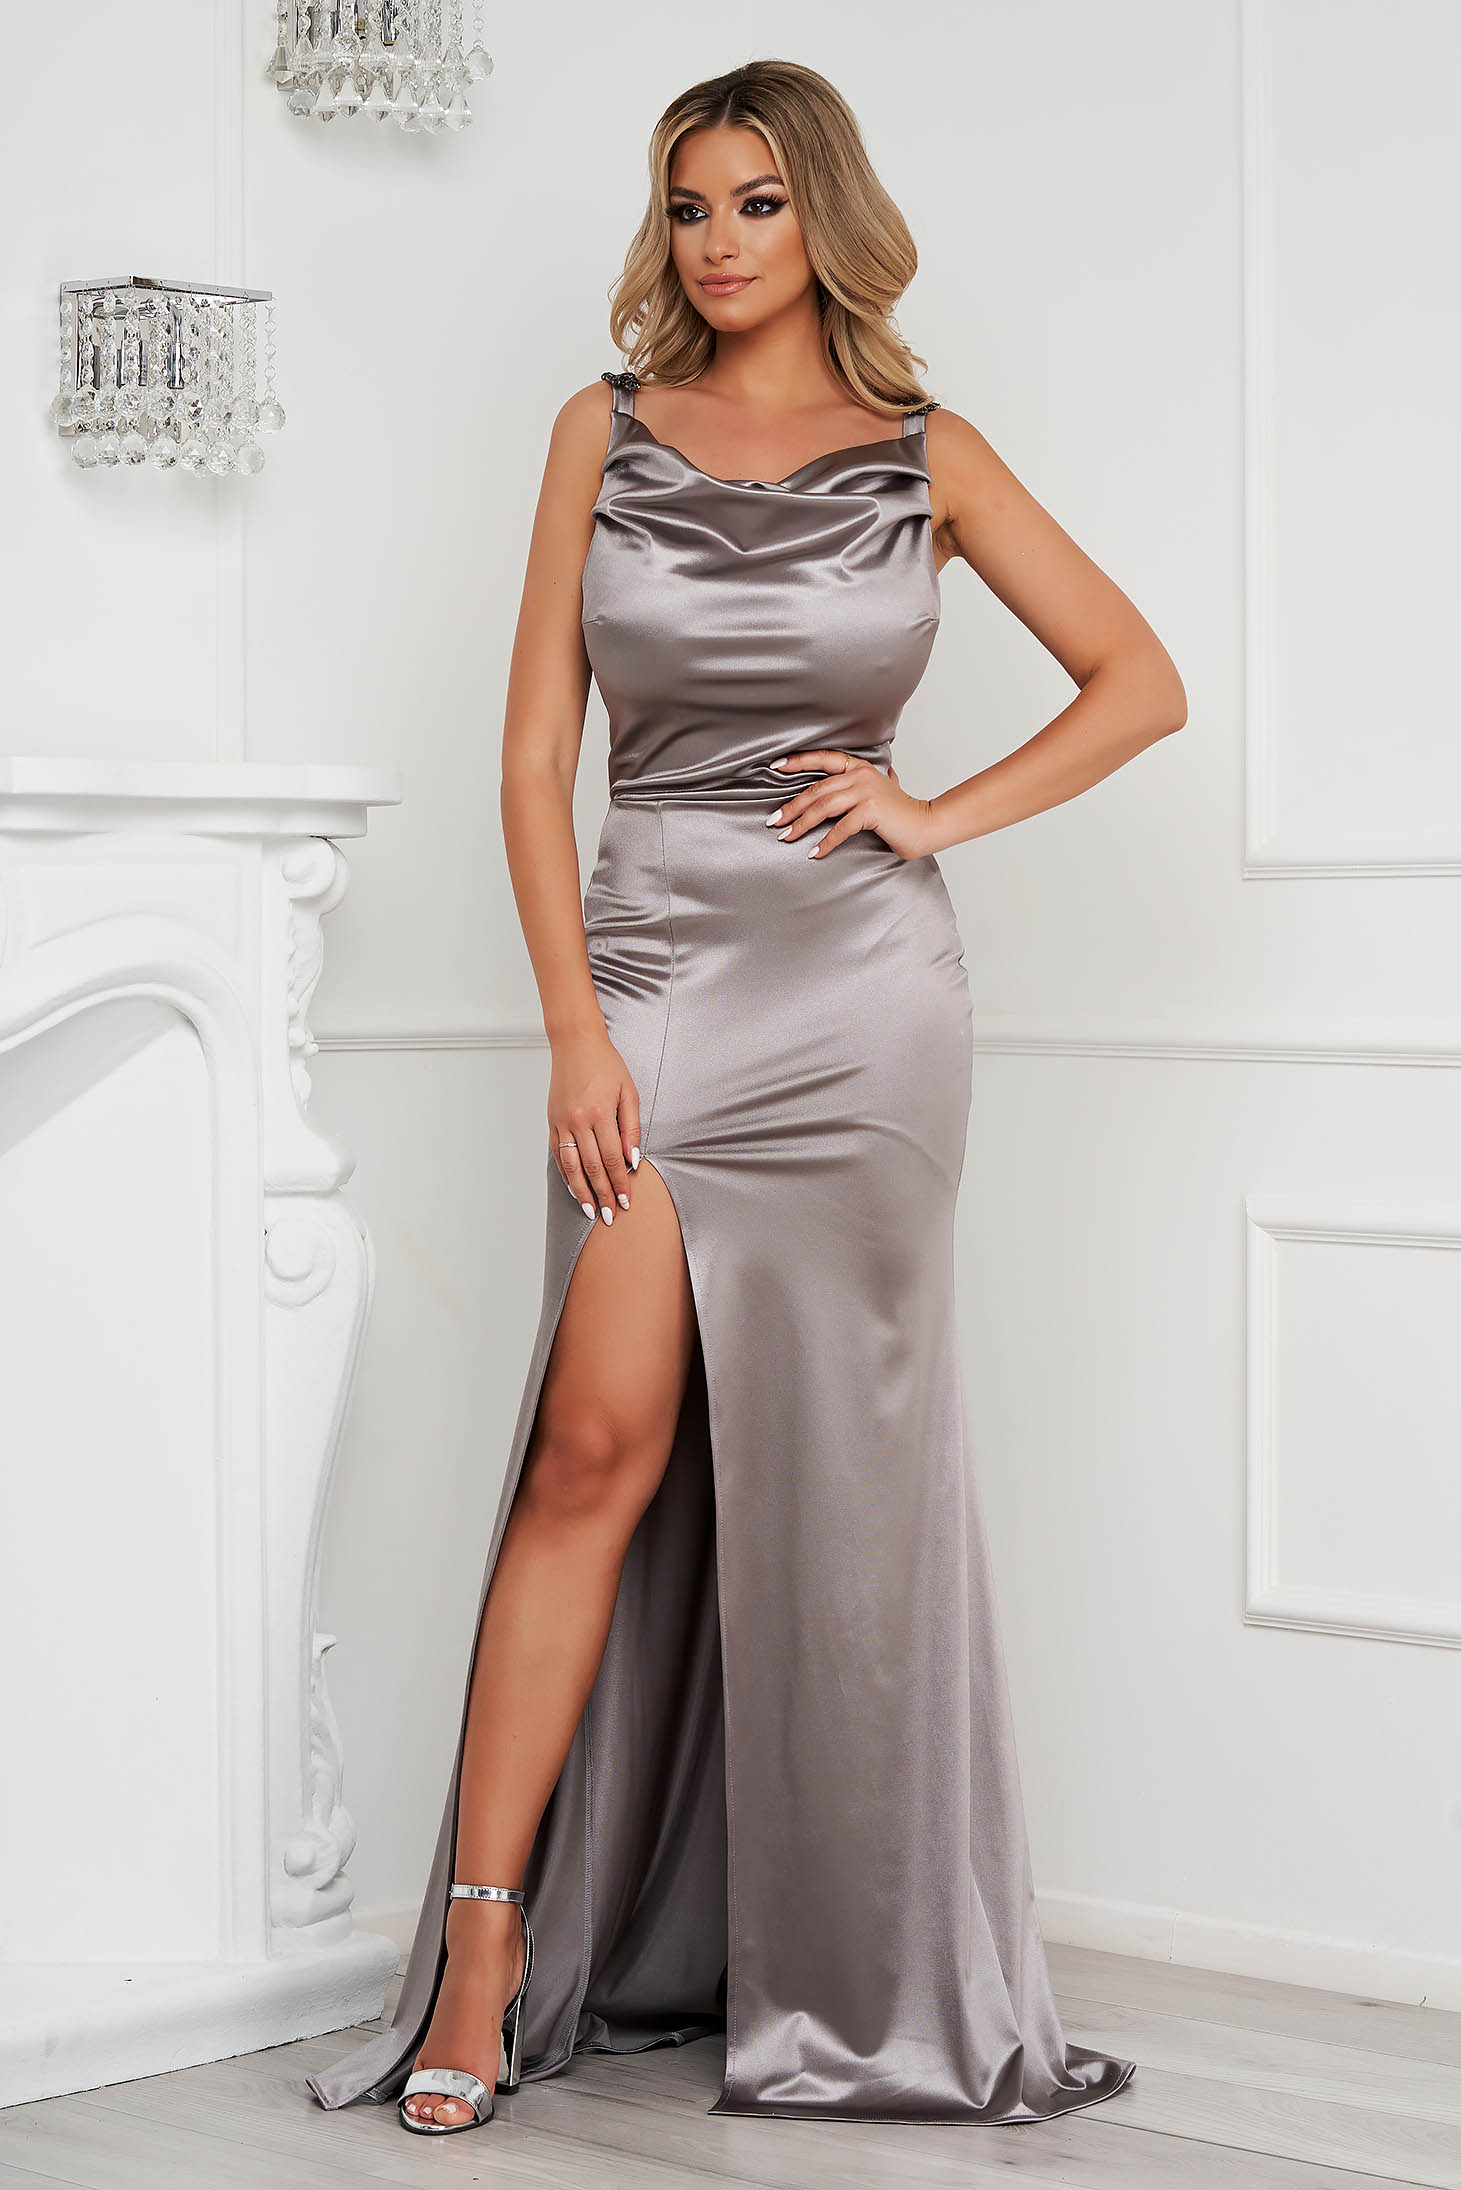 StarShinerS silver occasional long mermaid cut dress with embellished accessories from satin cowl neck